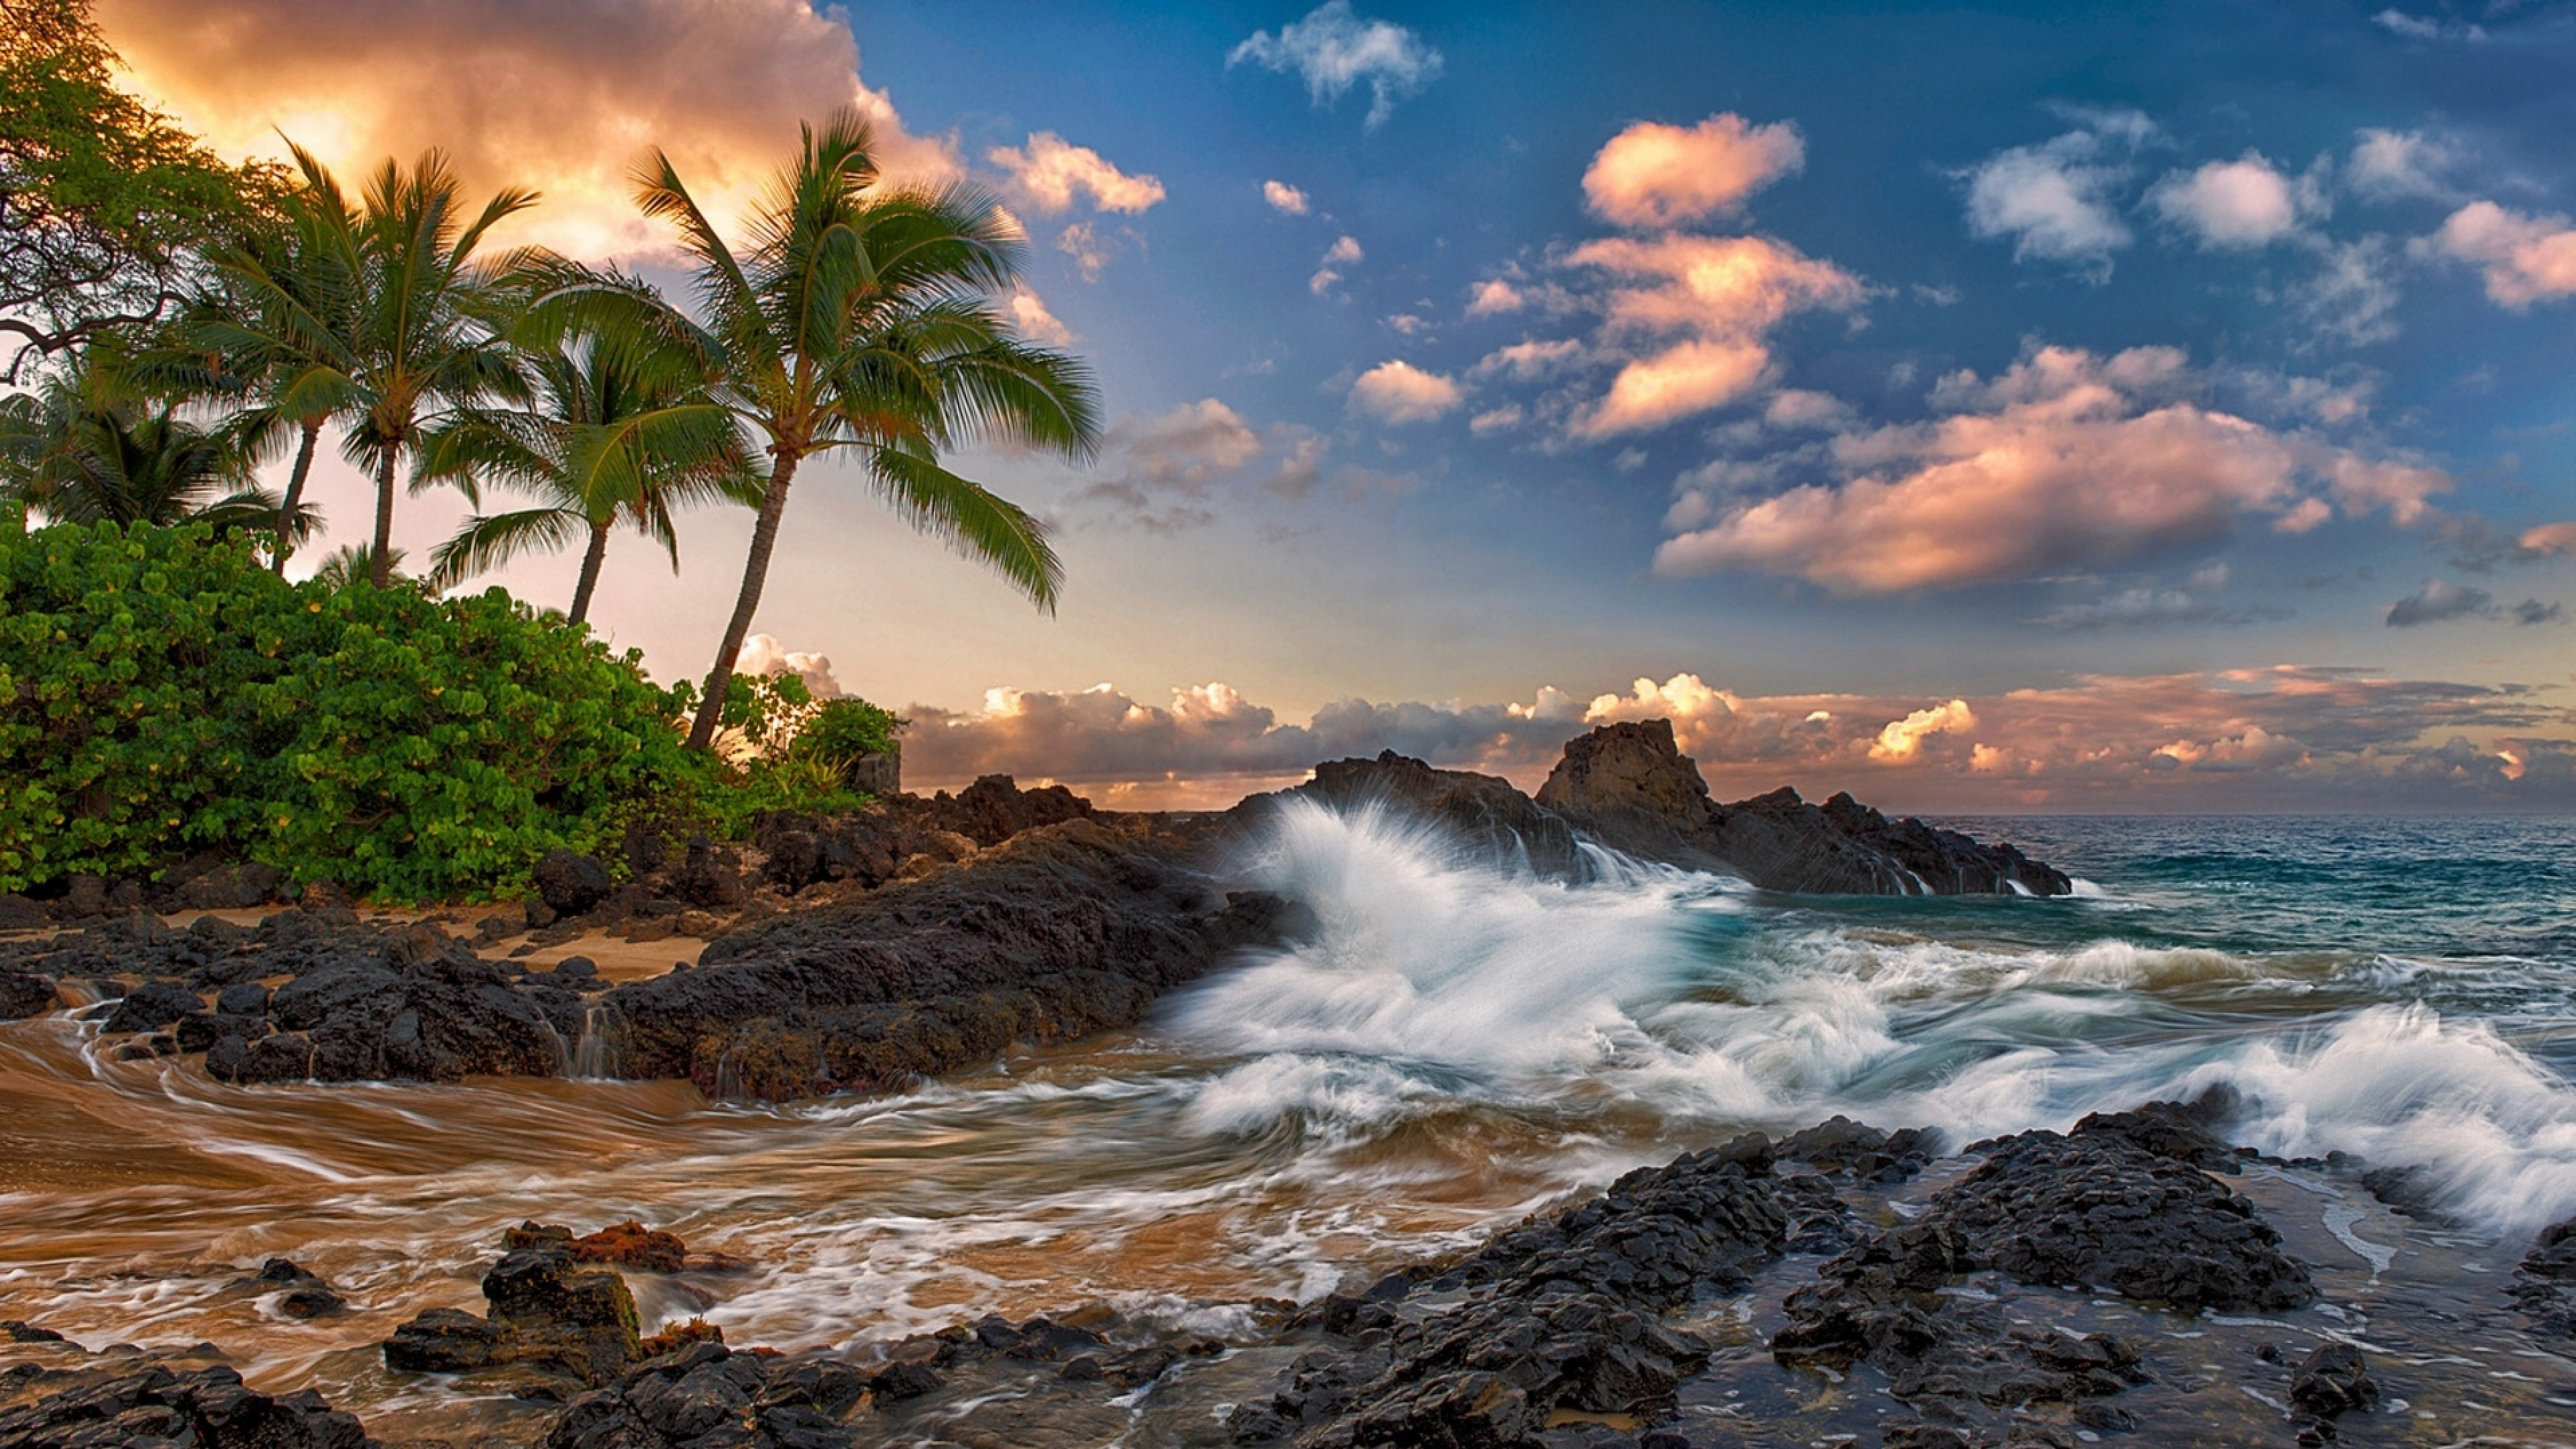 Res: 3840x2160, Most Popular Hawaii Wallpapers Background Image. Download Image